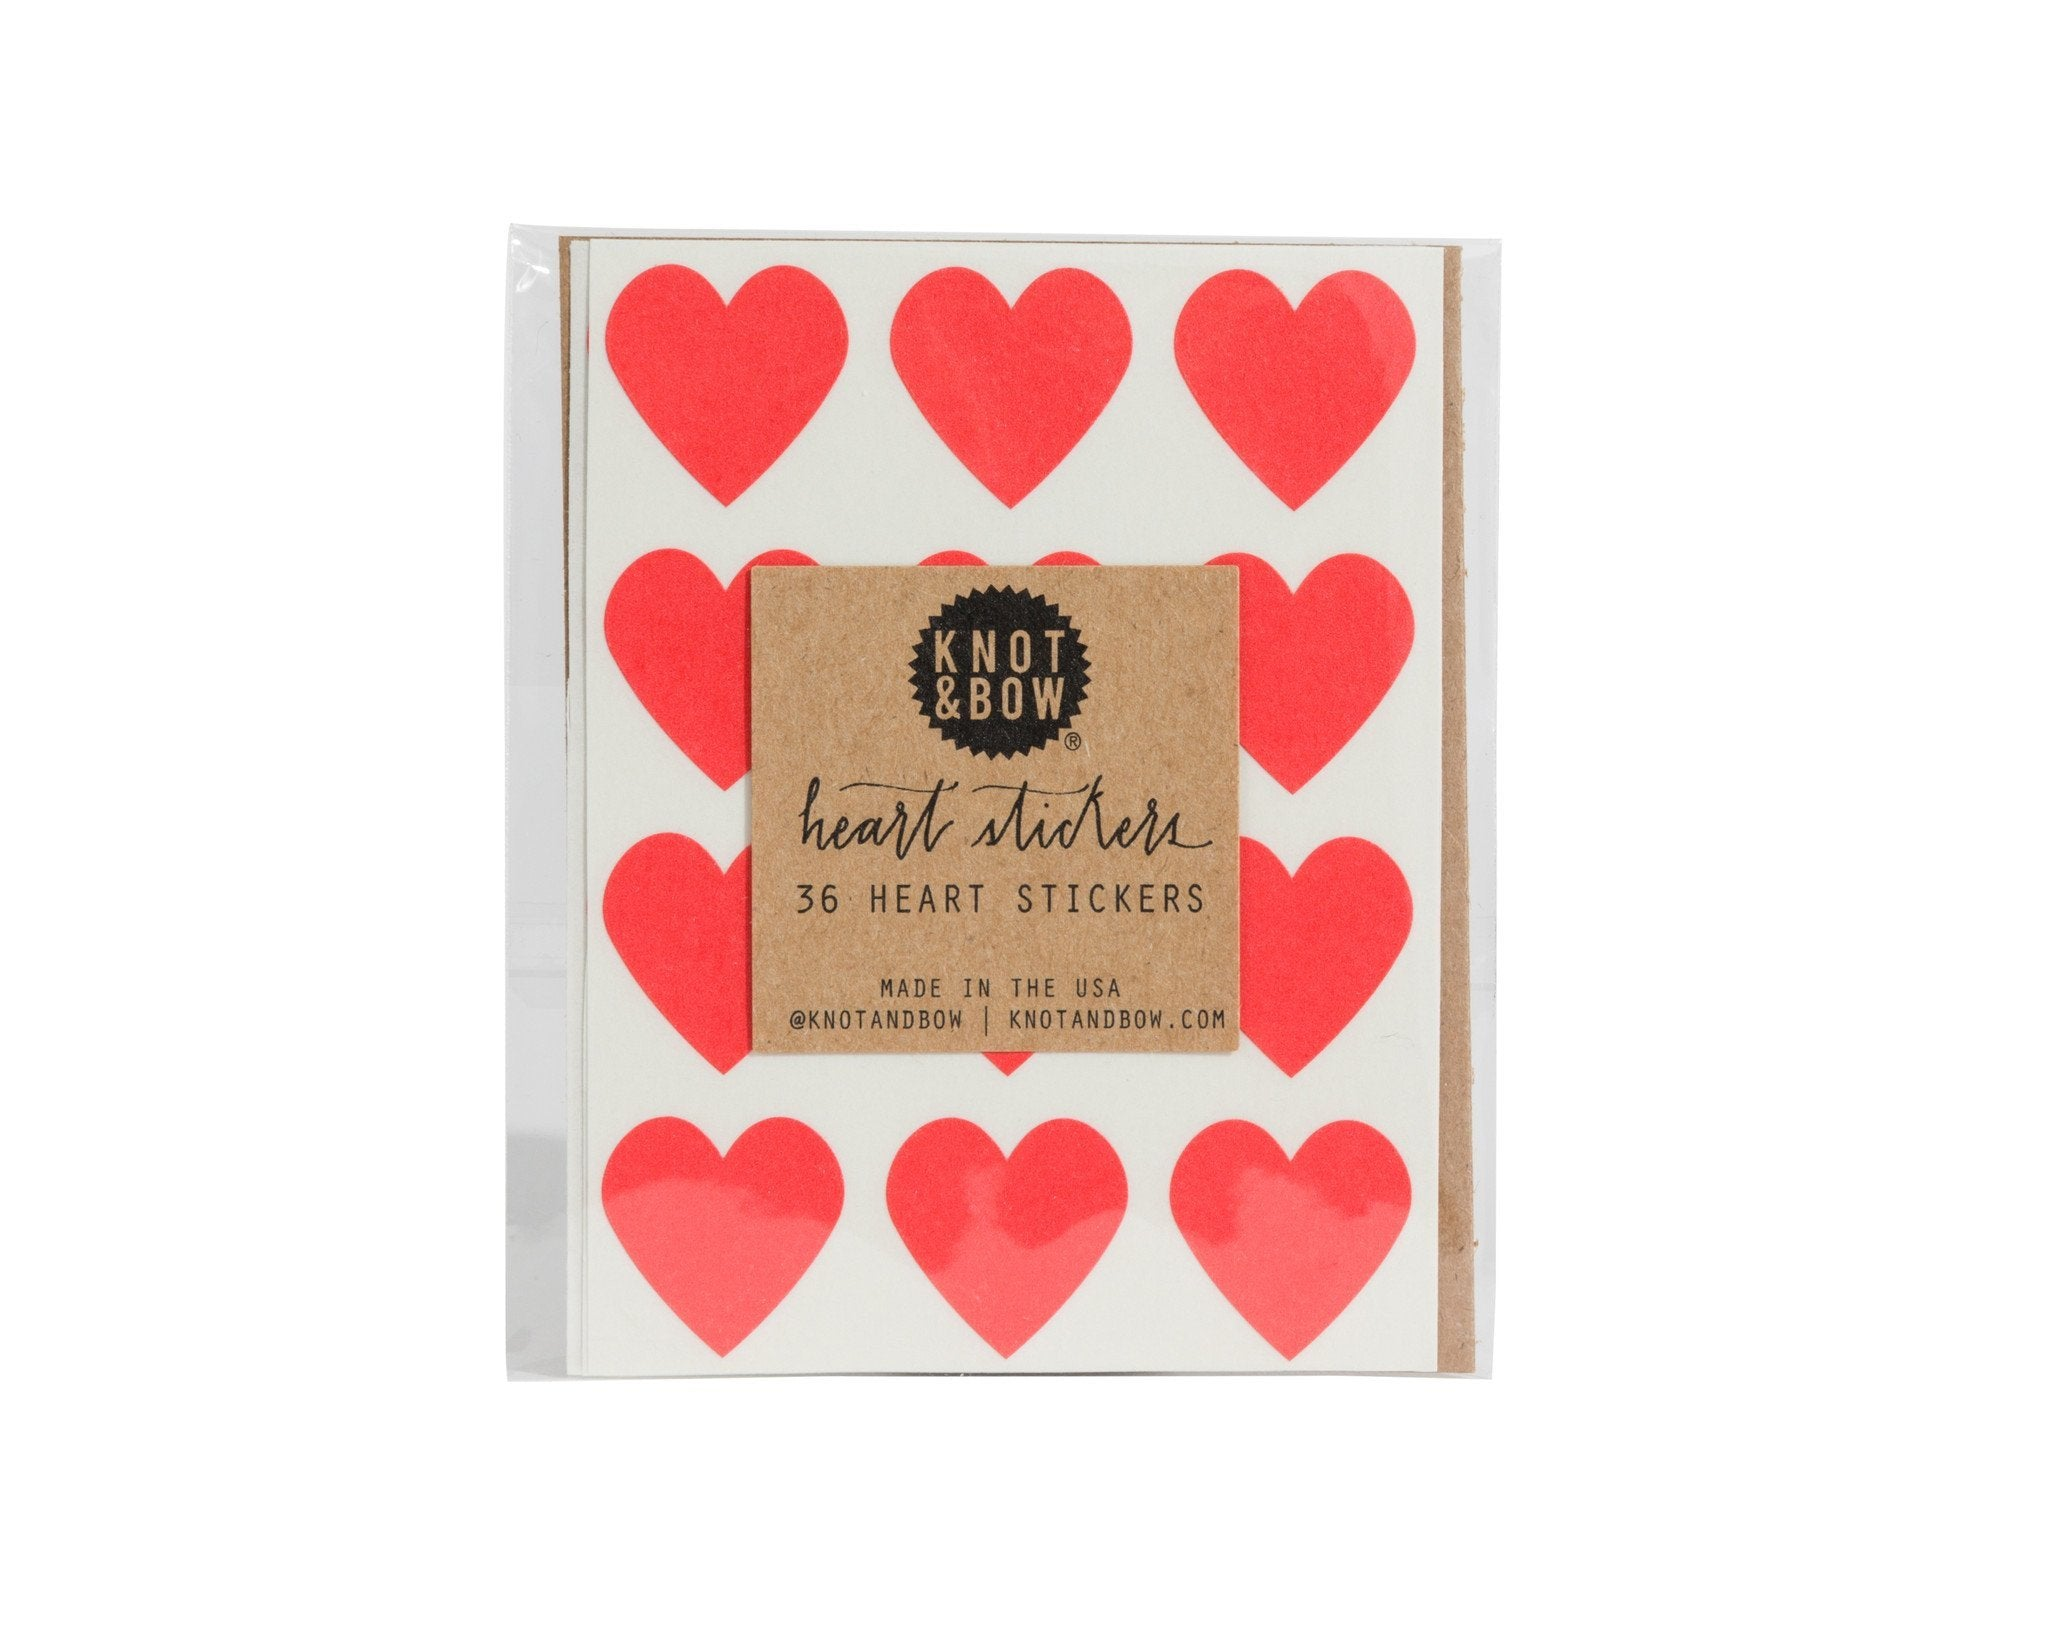 Pack of 36 red heart shaped stickers at www.onceuponaflutter.com